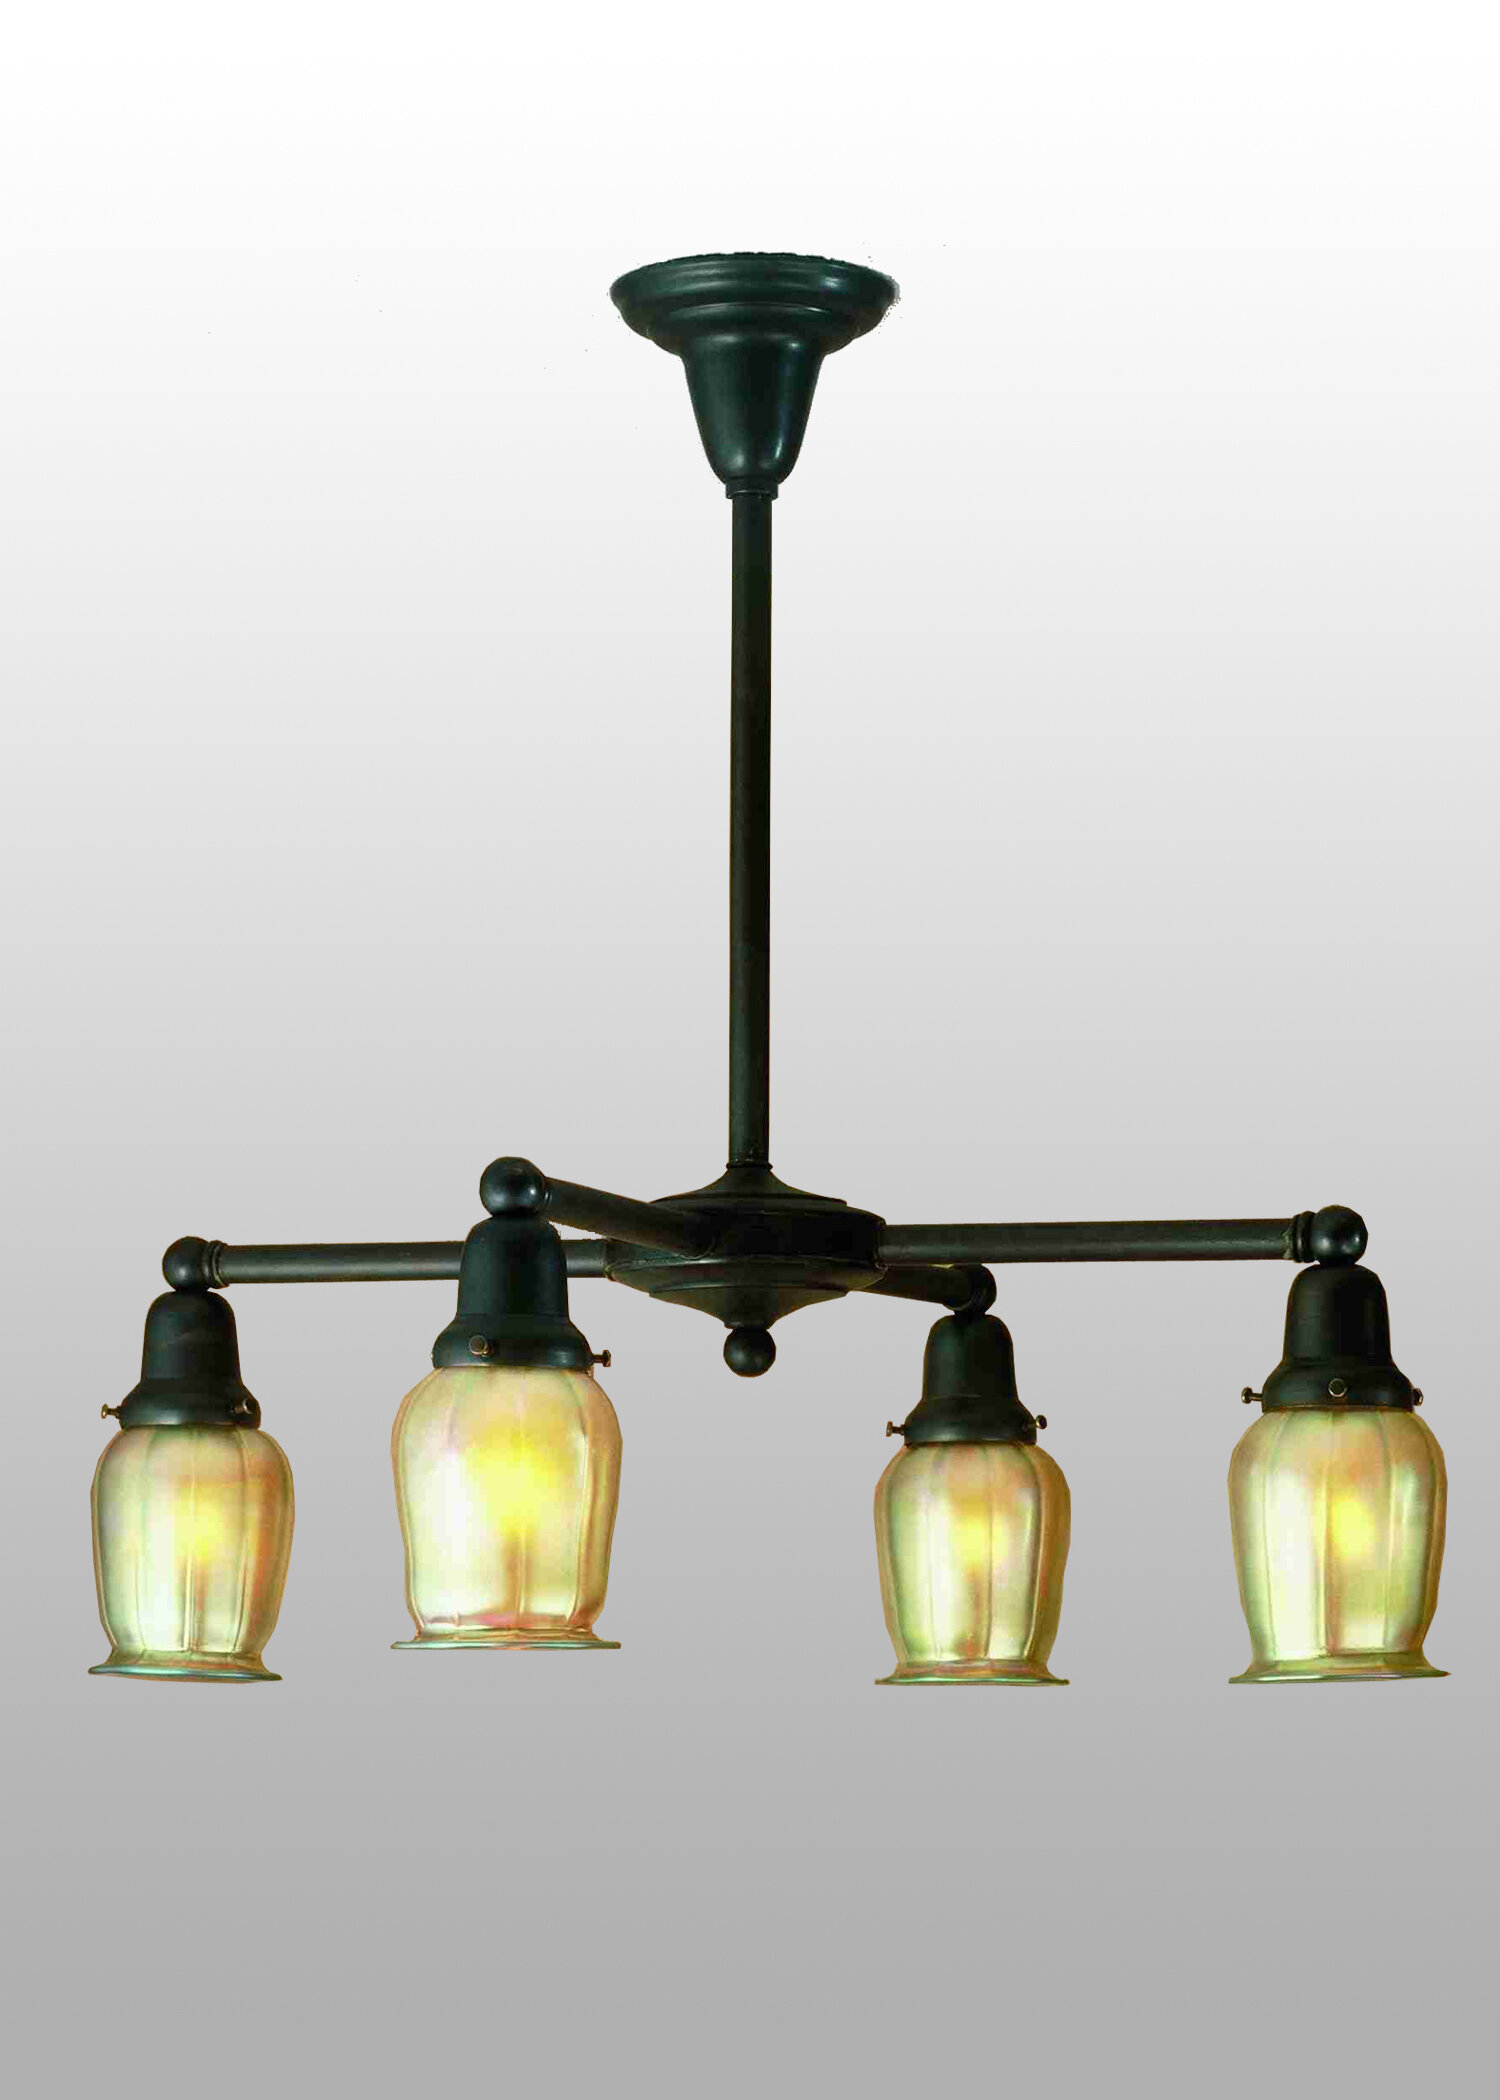 meyda tiffany revival oyster bay favrile 4 light shaded chandelier